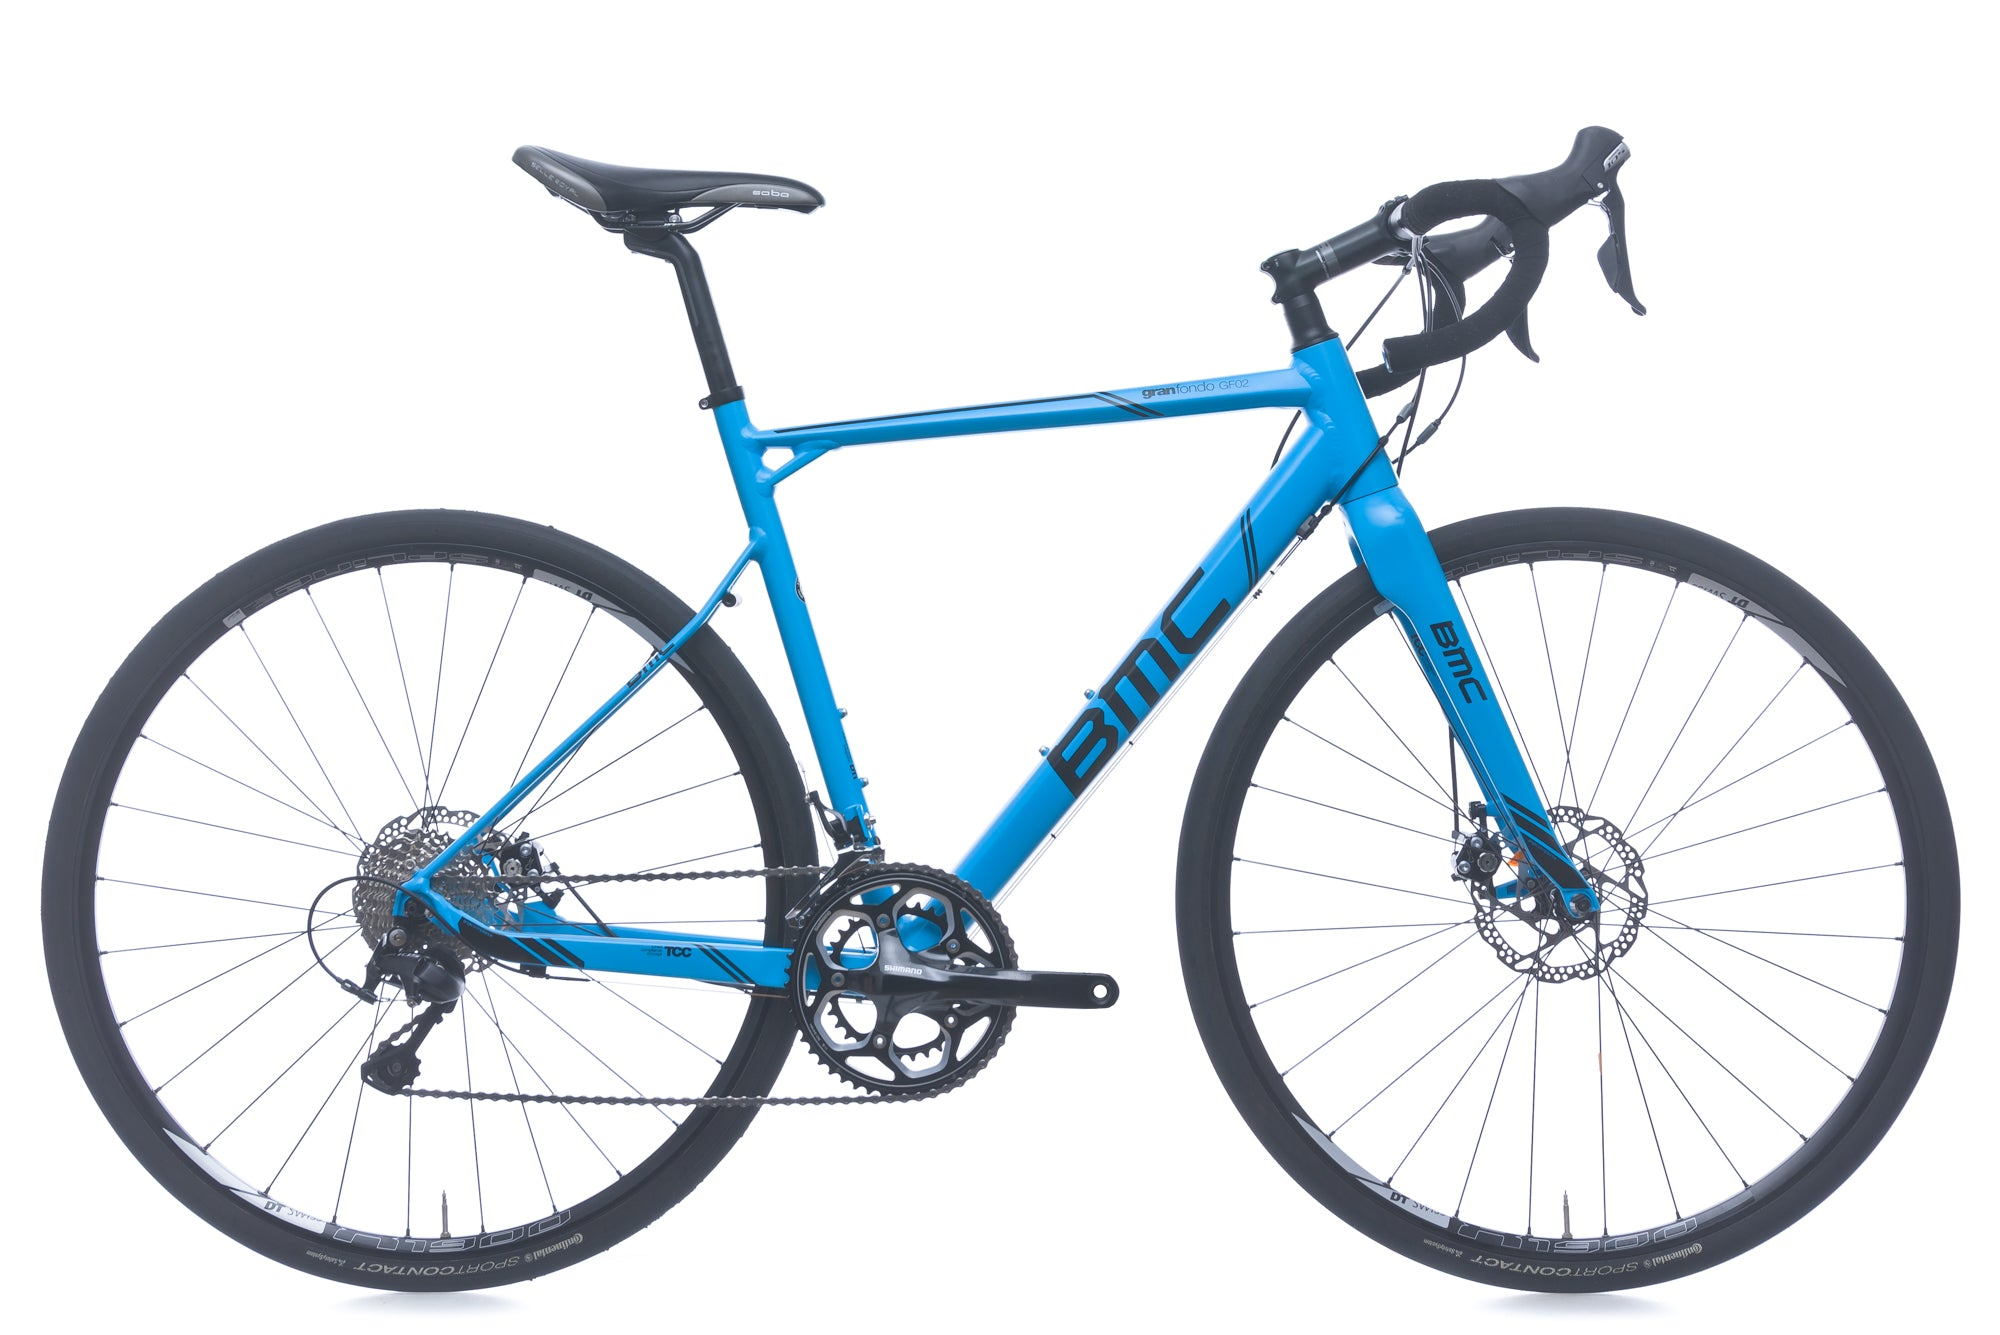 BMC Granfondo GF02 Disc 54cm bike - 2016